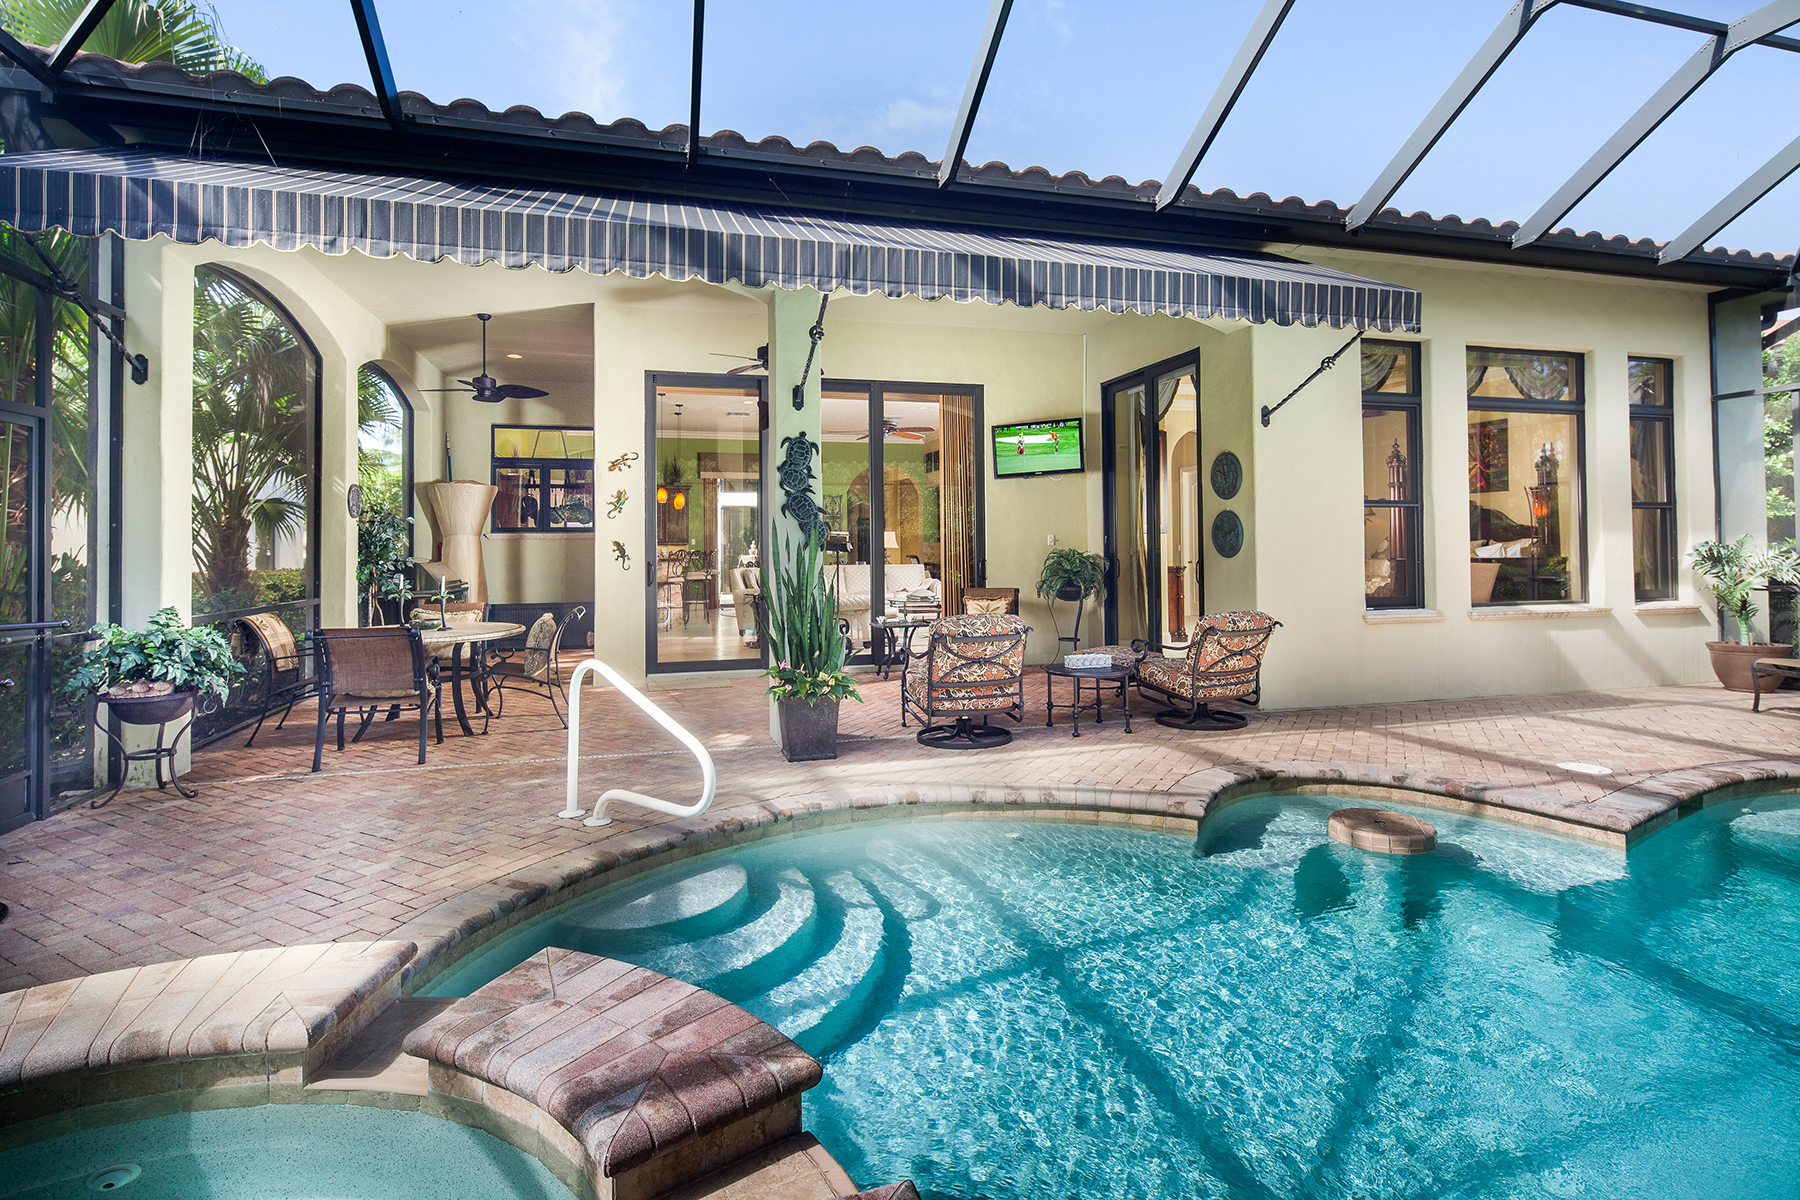 Single Family Home for Sale at 16838 Cabreo Dr , Naples, FL 34110 16838 Cabreo Dr Naples, Florida, 34110 United States